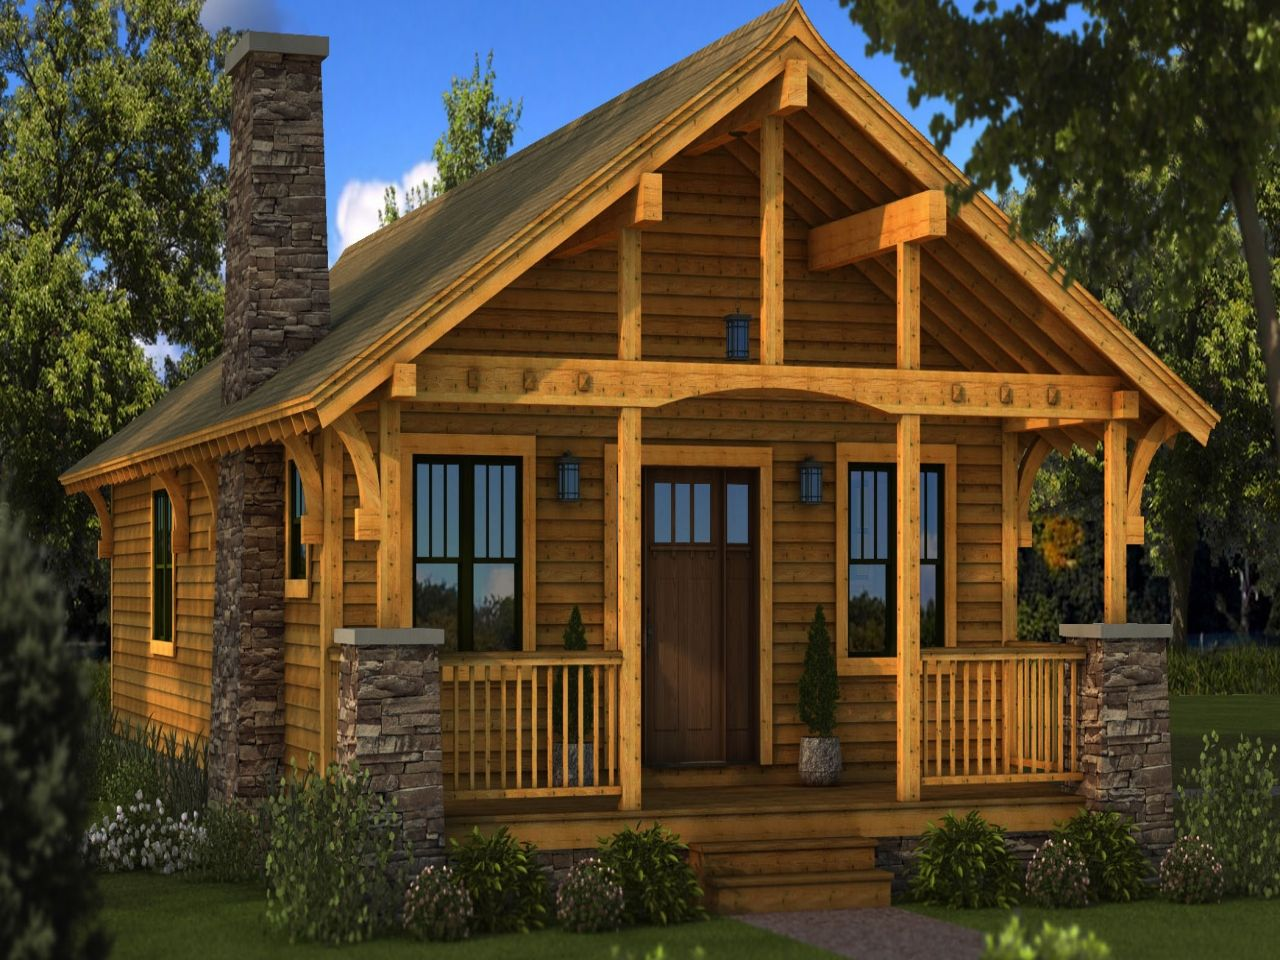 Small log cabin homes plans one story cabin plans for Cabin home plans